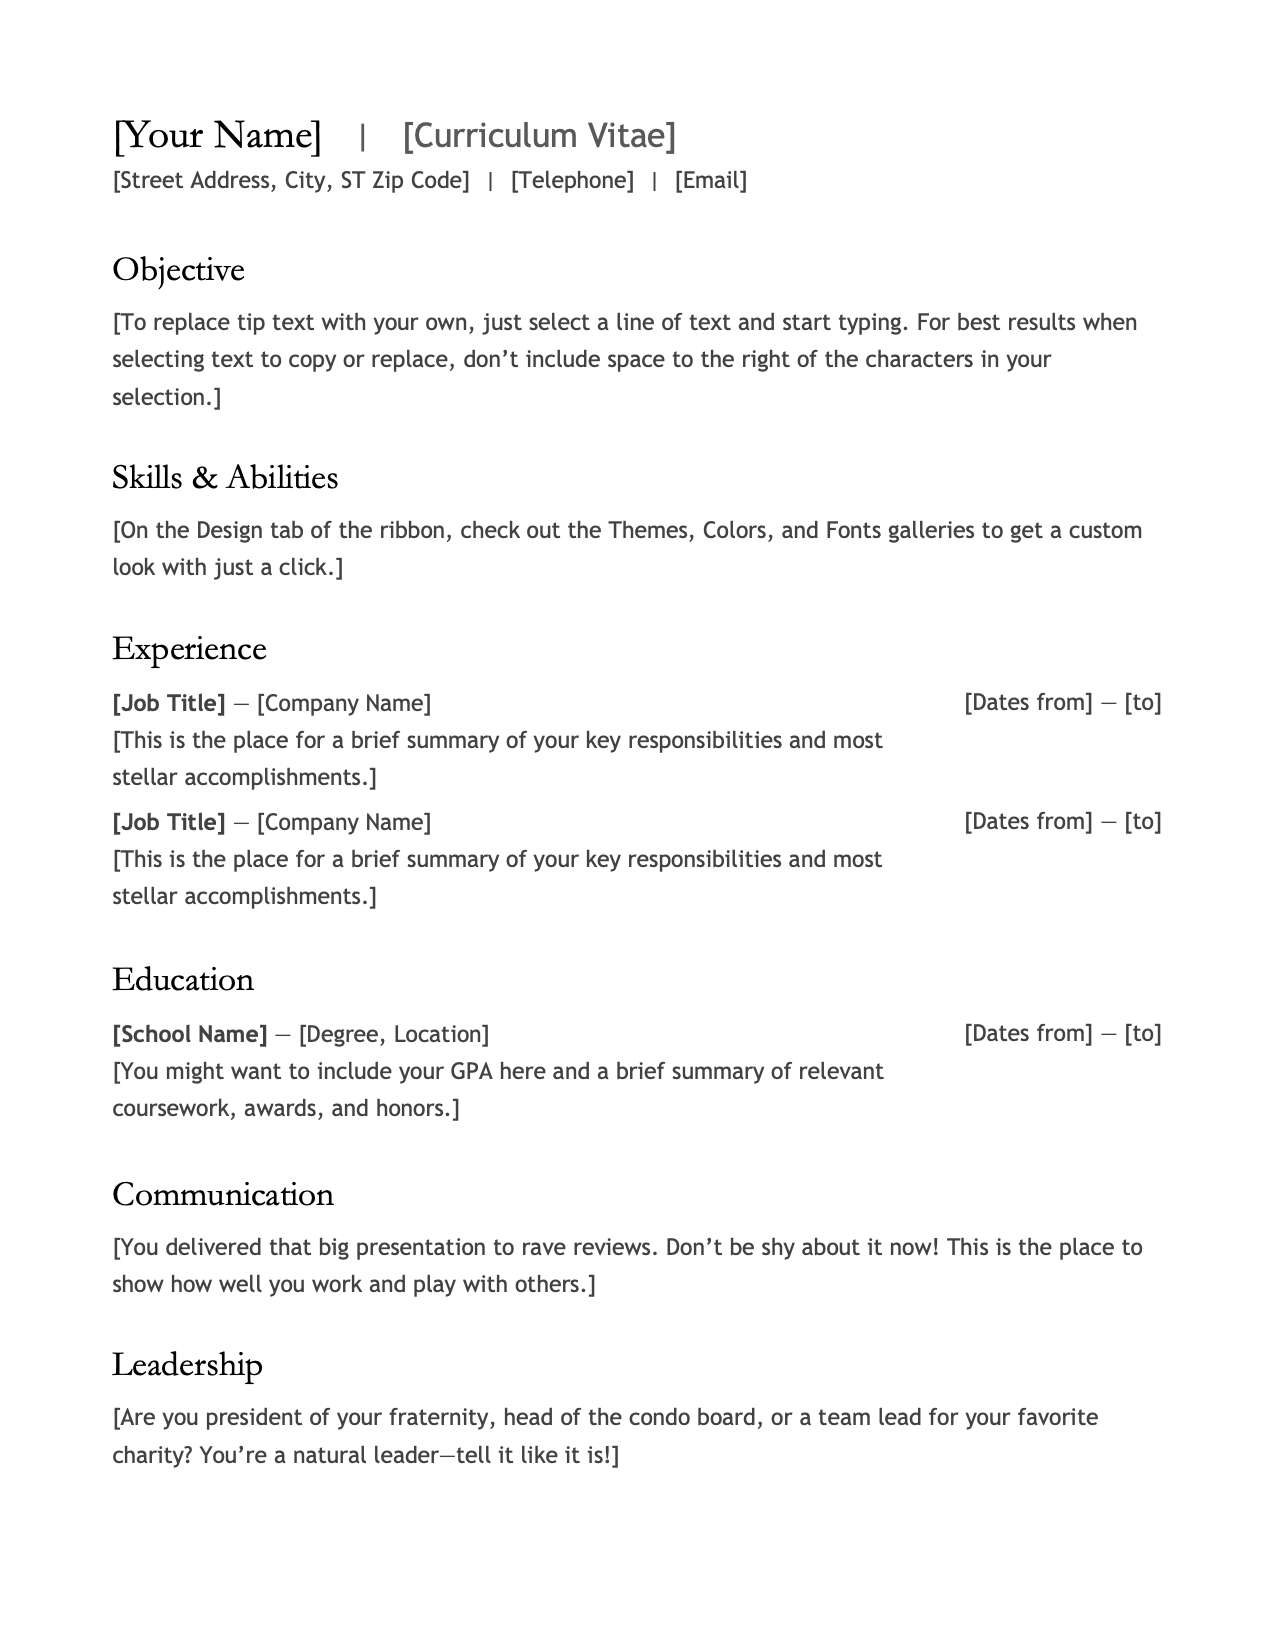 CV Template Option 6